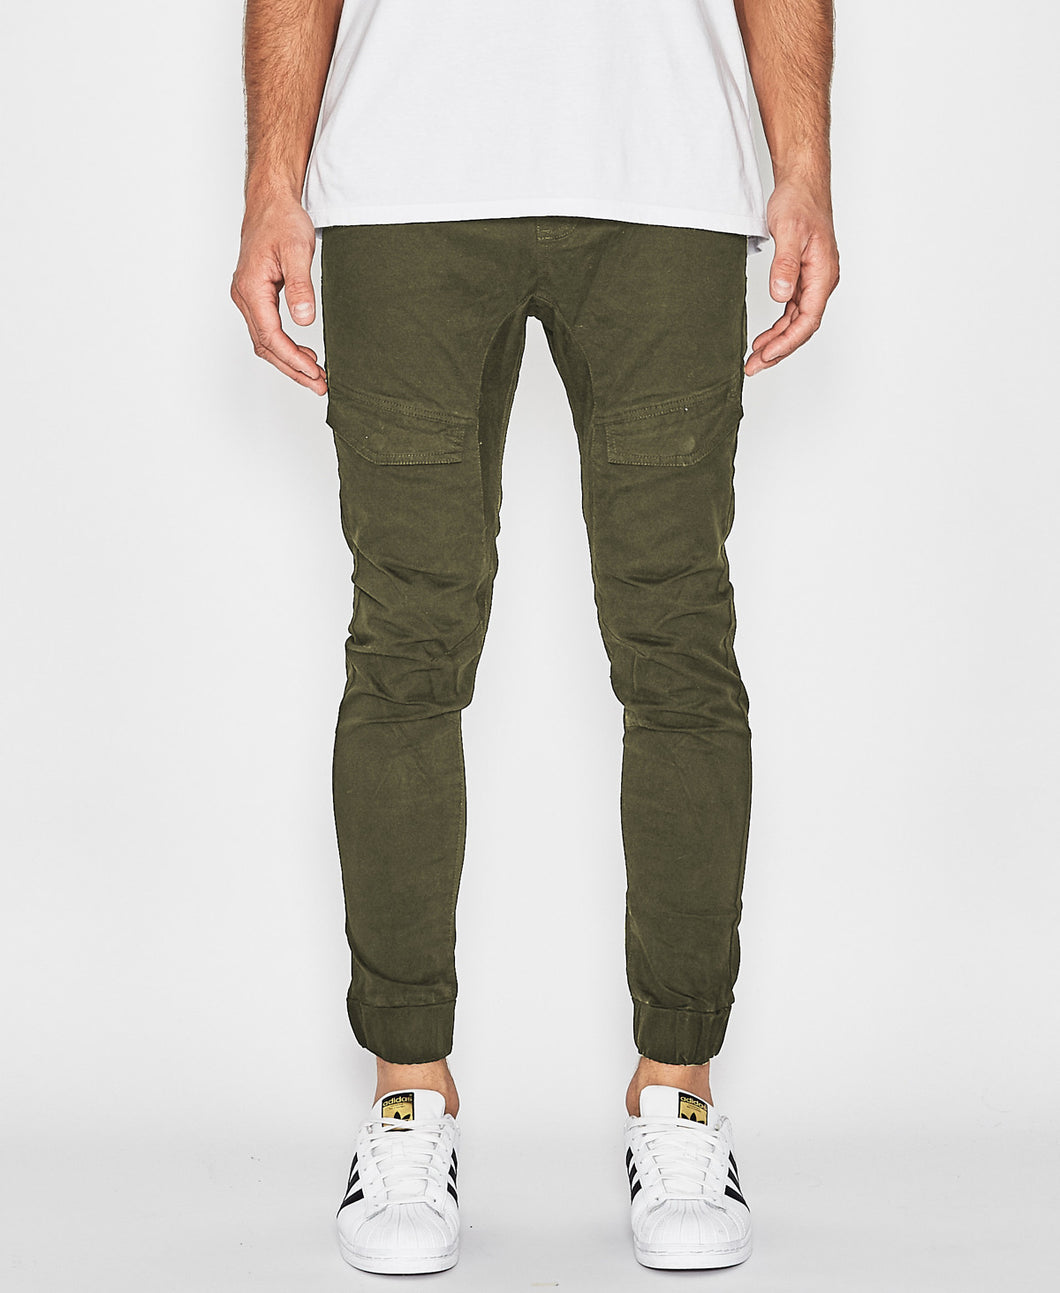 Nena & Pasadena Men's Flight Pant - Ivy Green